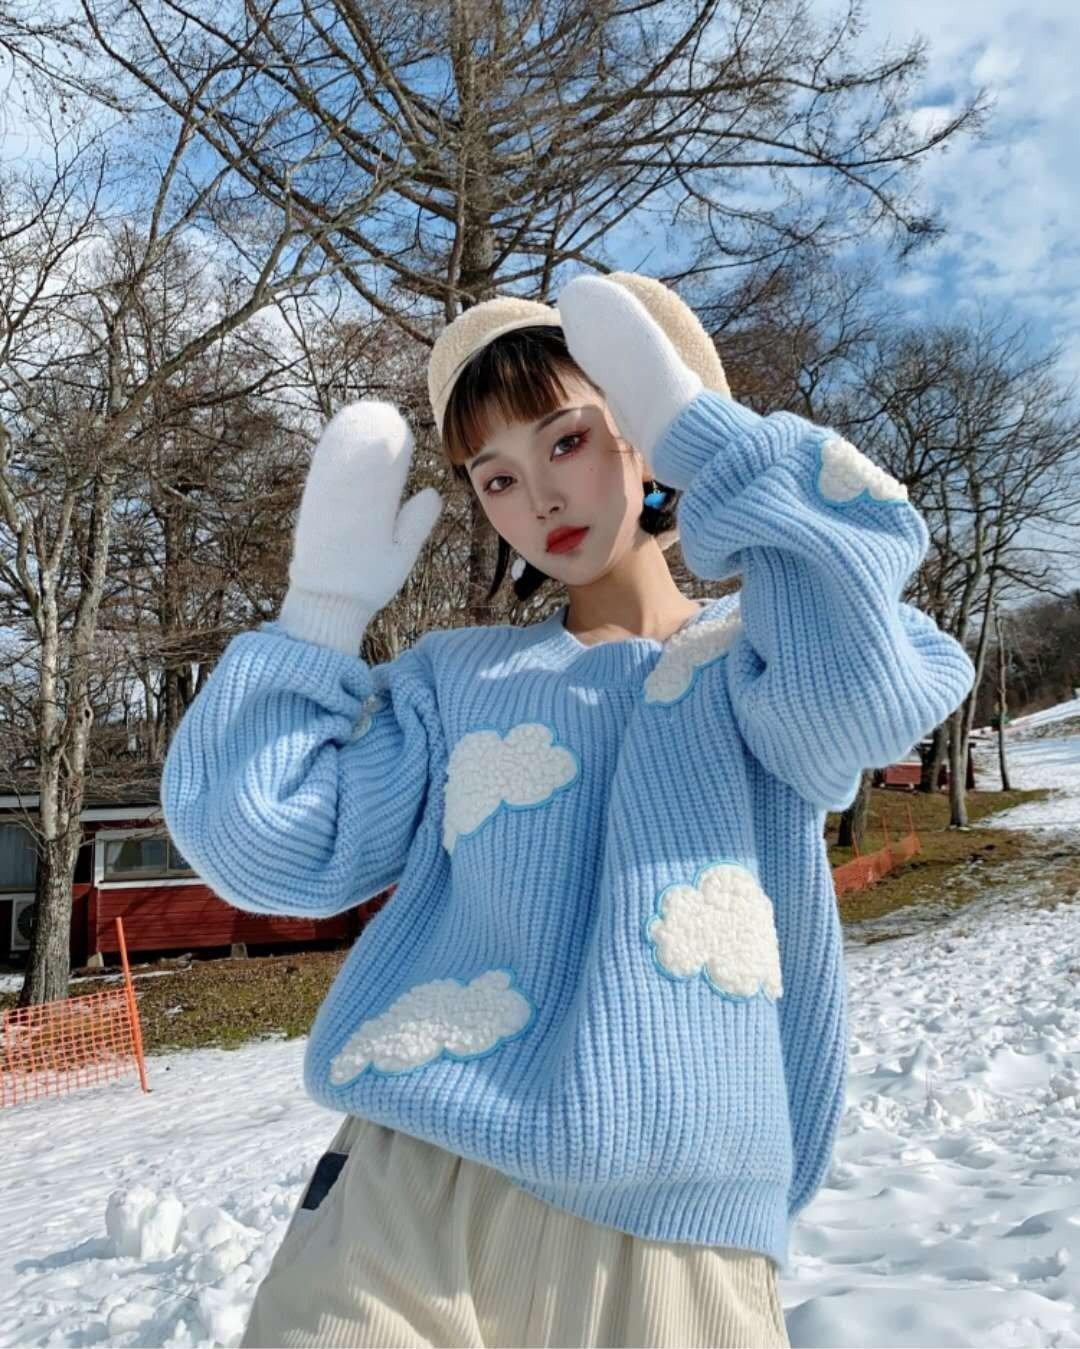 SOFT GIRL CLOUDS KNITTED SWEATER - Cosmique Studio - Aesthetic Outfits